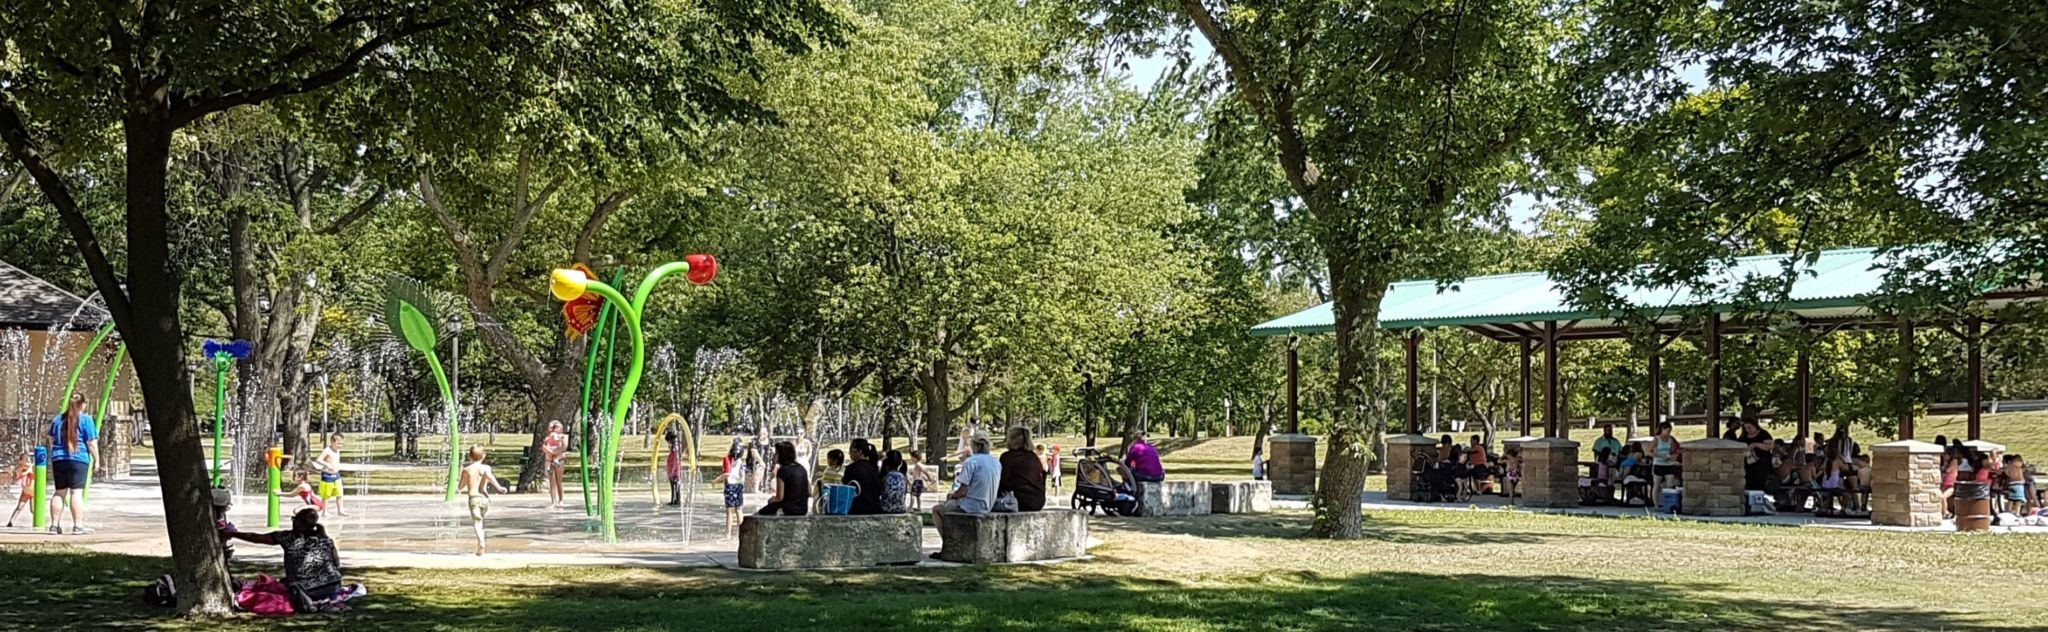 A park with trees, shade structure and splash pad in Windsor. Source: Natural Resources Canada